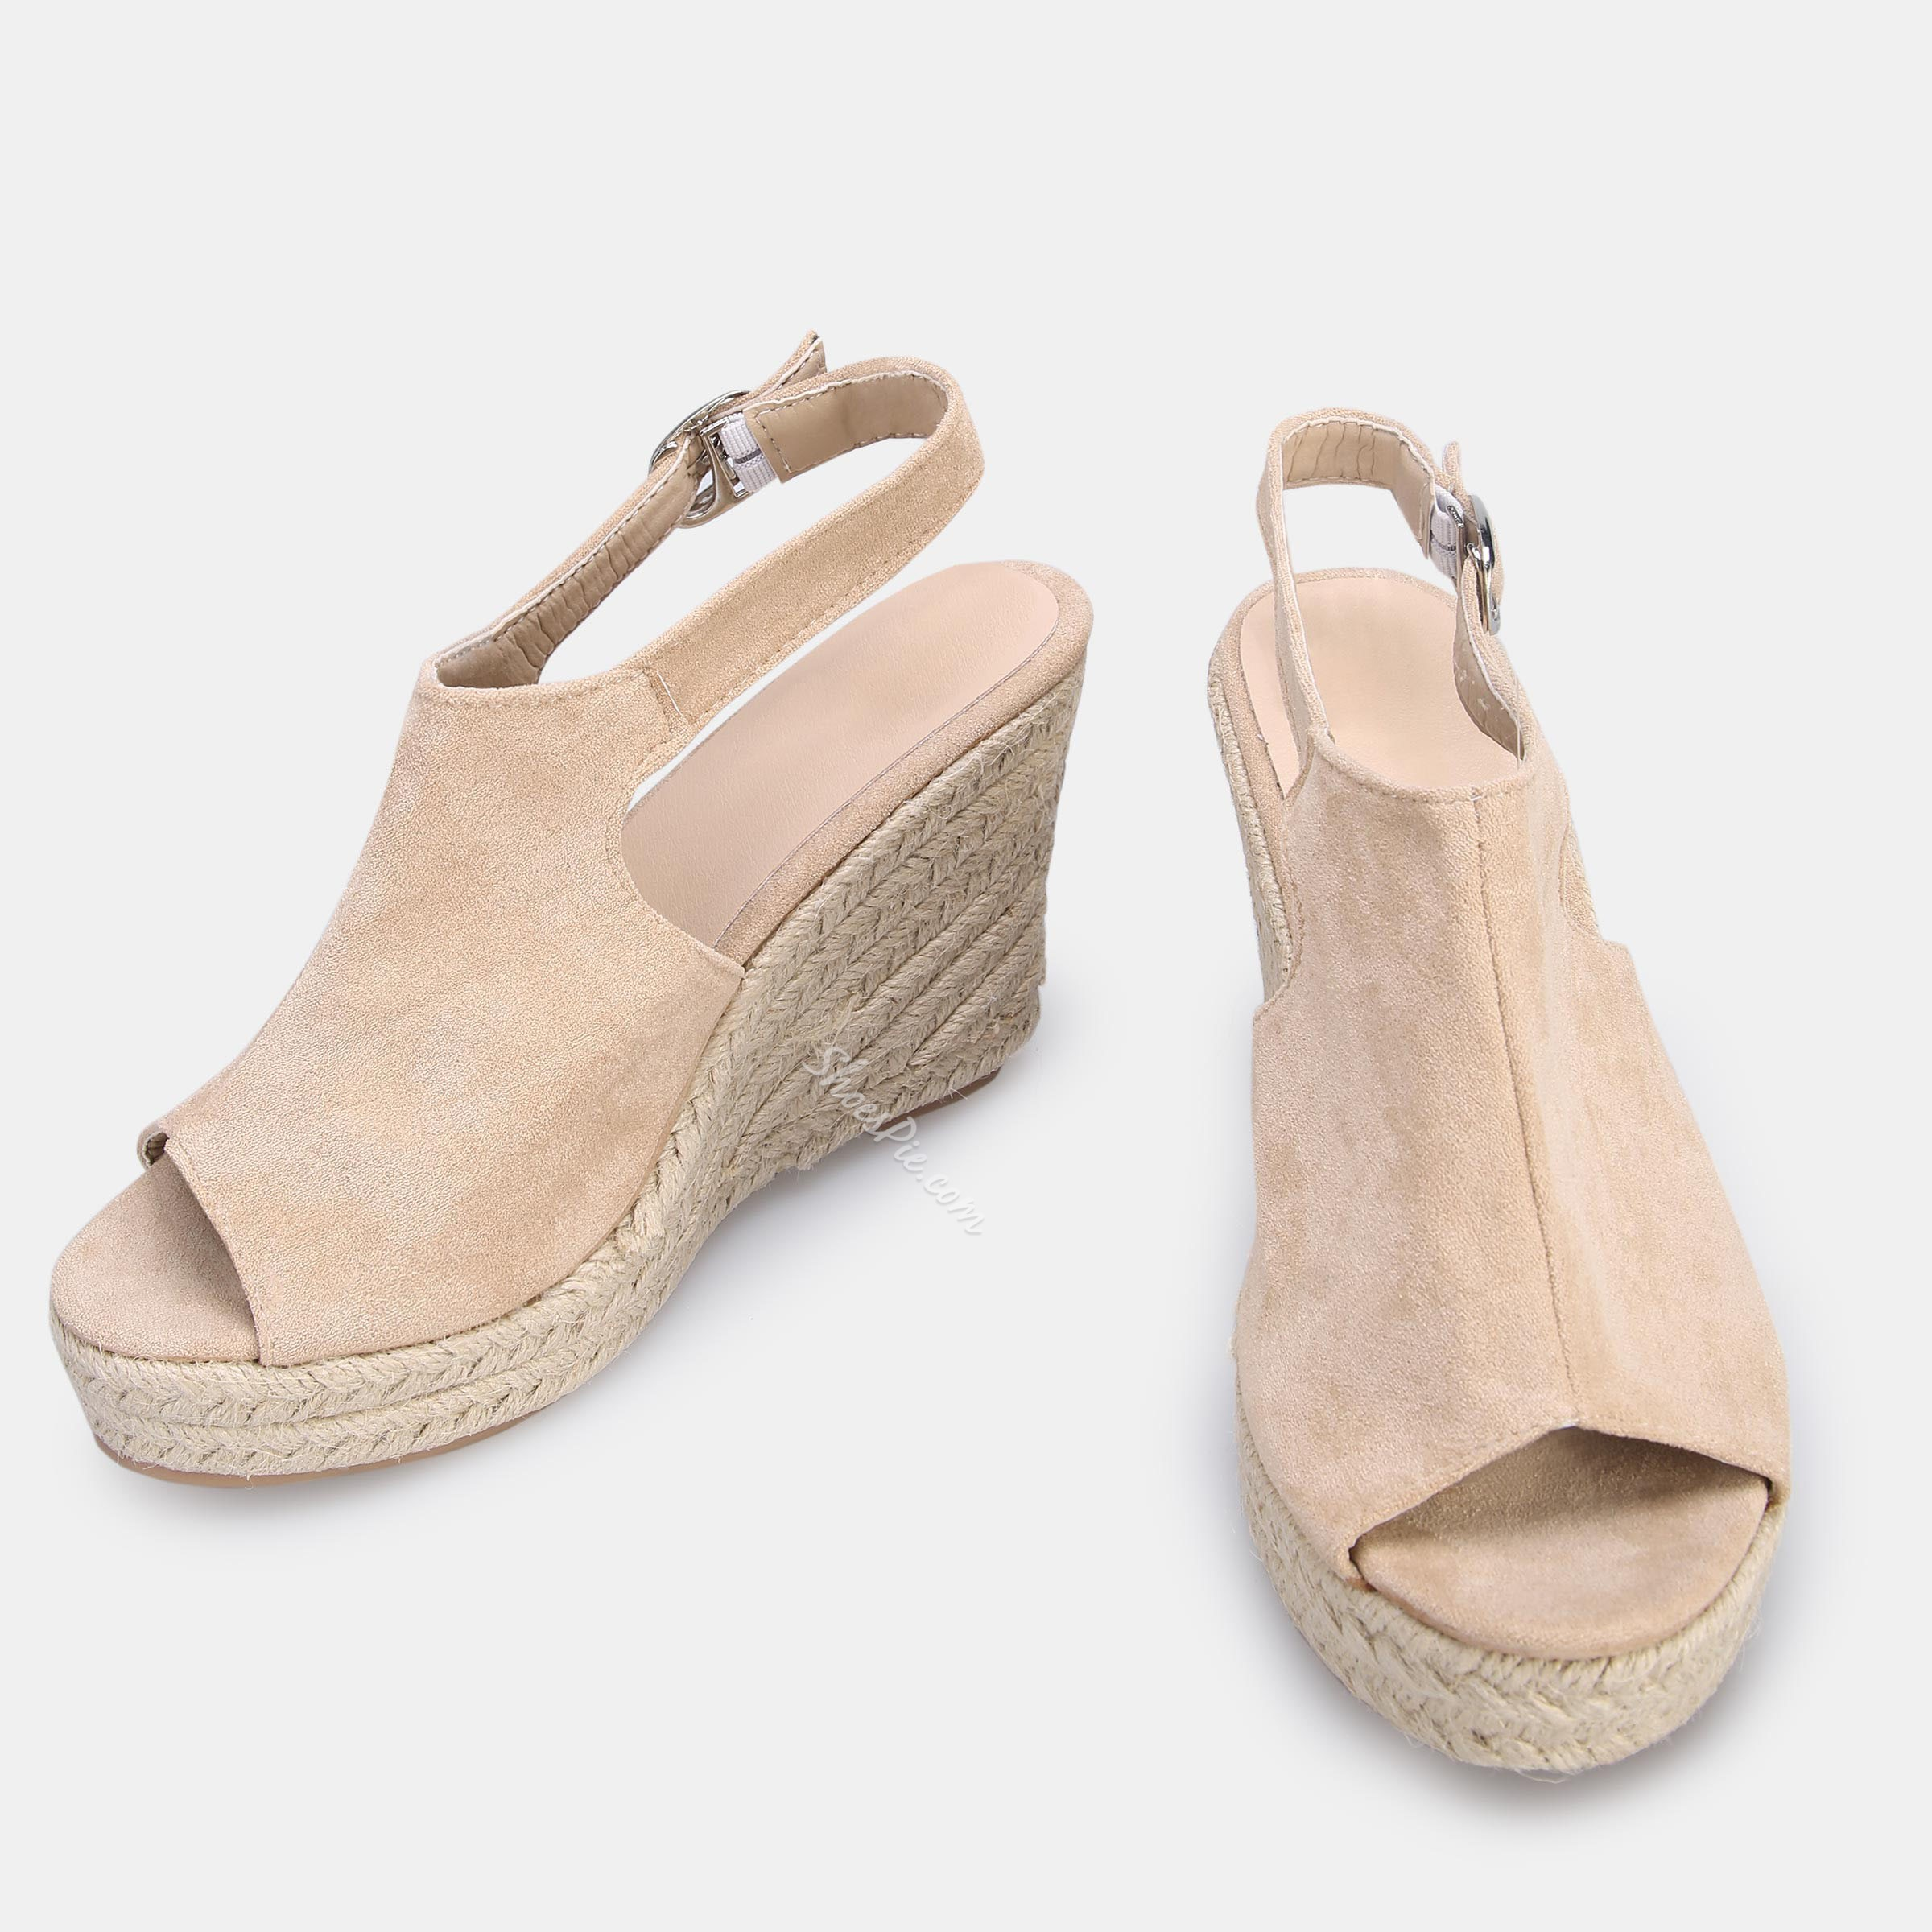 Shoespie Slingback Wedge Heel Buckle Peep Toe Sandals